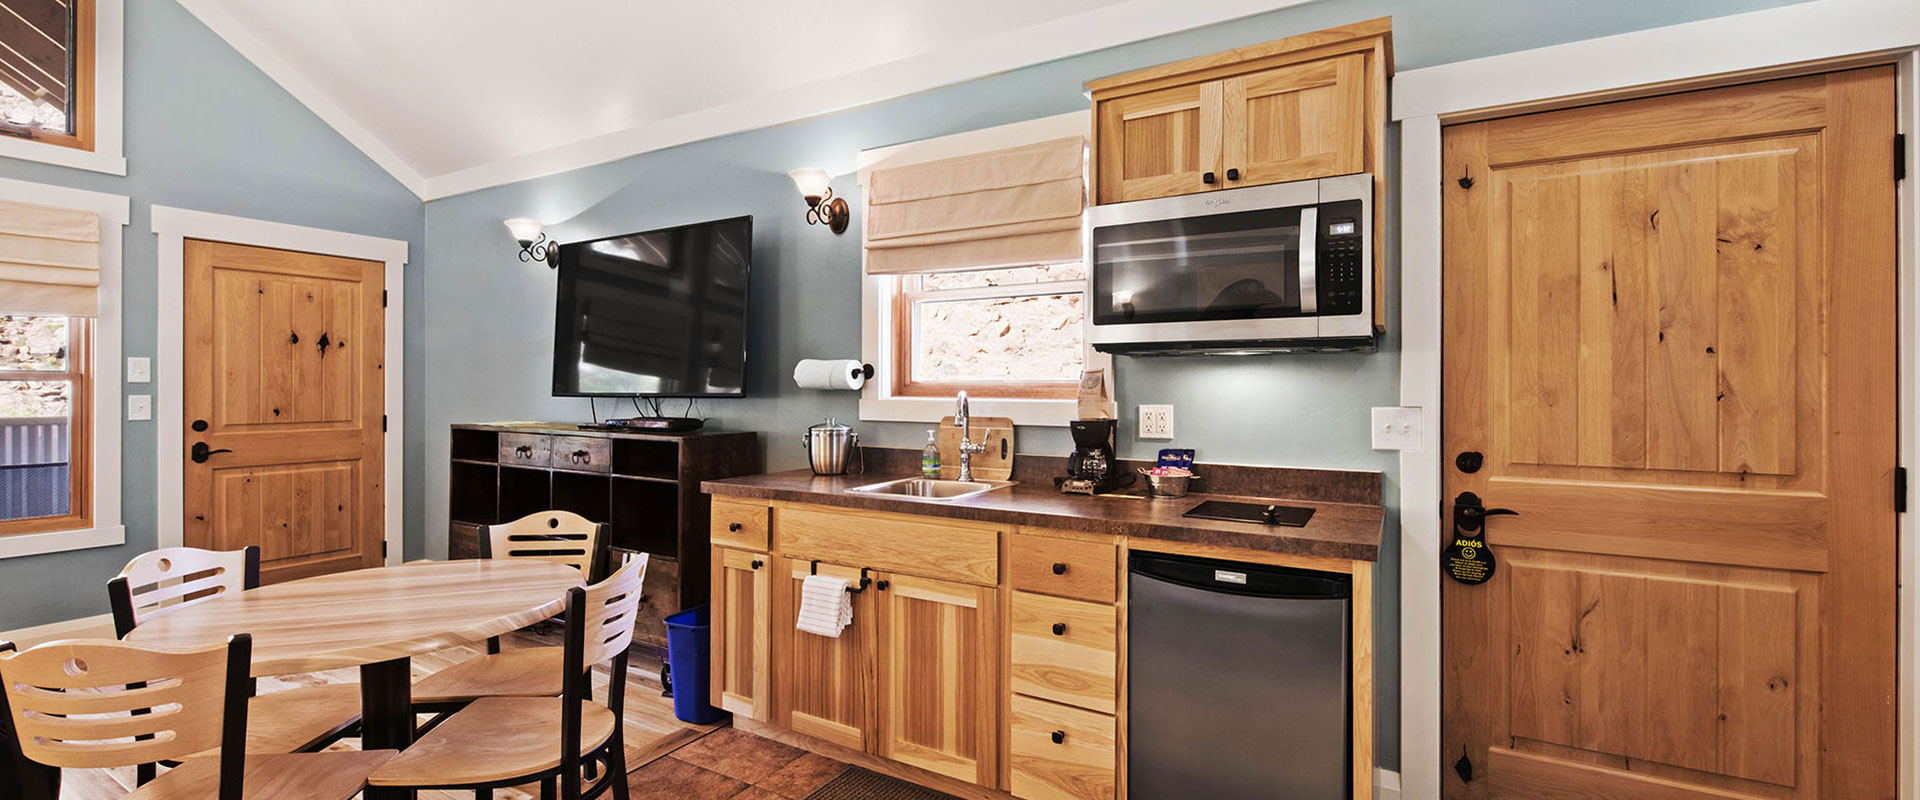 The fully equipped kitchen at Unit #18 at Moab Springs Ranch features honey wood color cupboards, gas stove, brown tile backsplash and countertops, and a wrap around island.